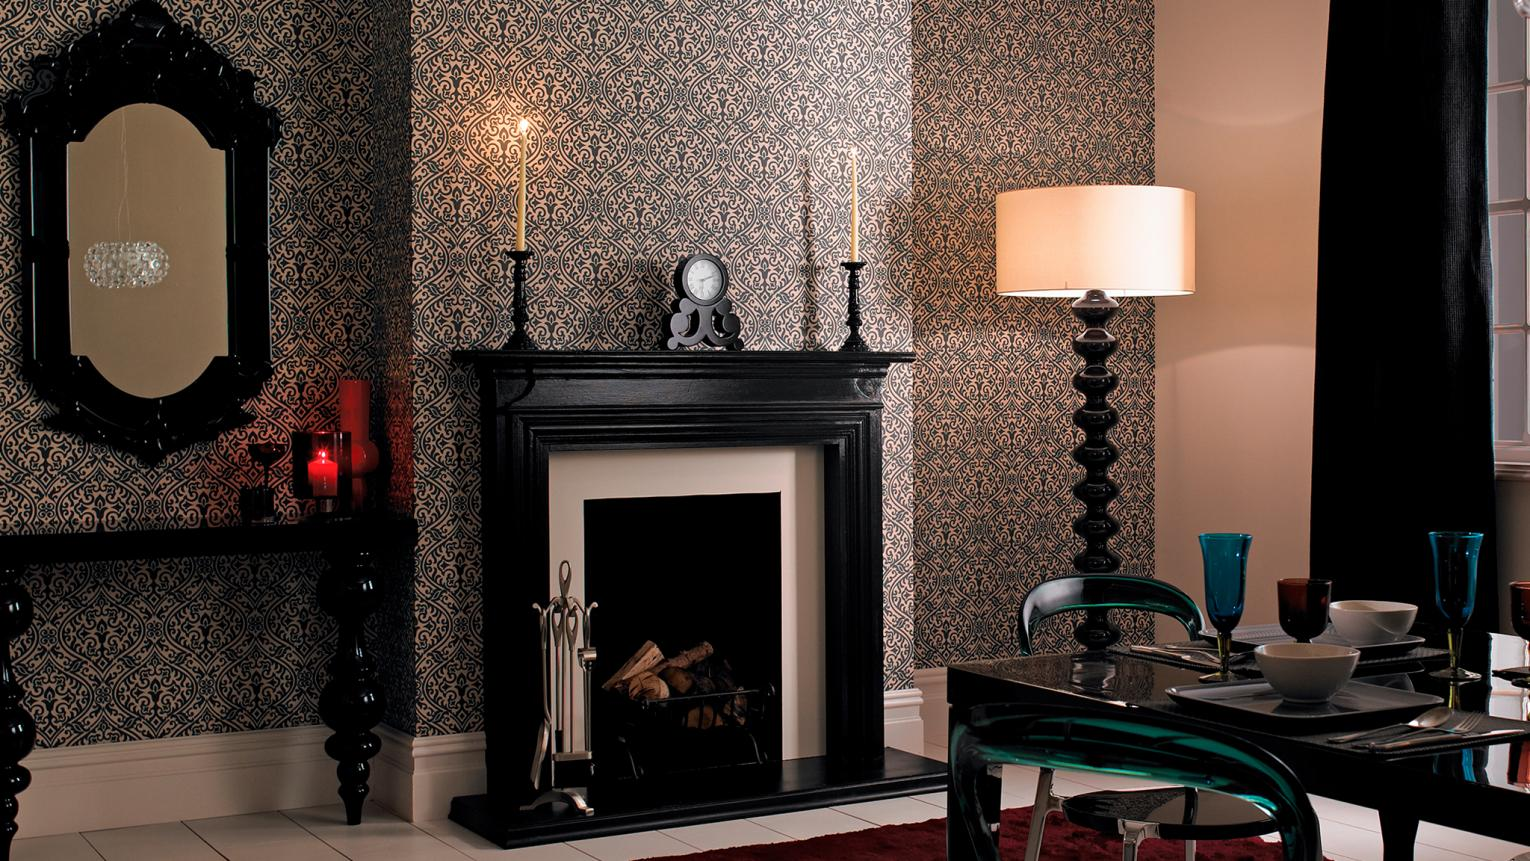 Just a touch of black colour can add instant drama and sophistication to a room.